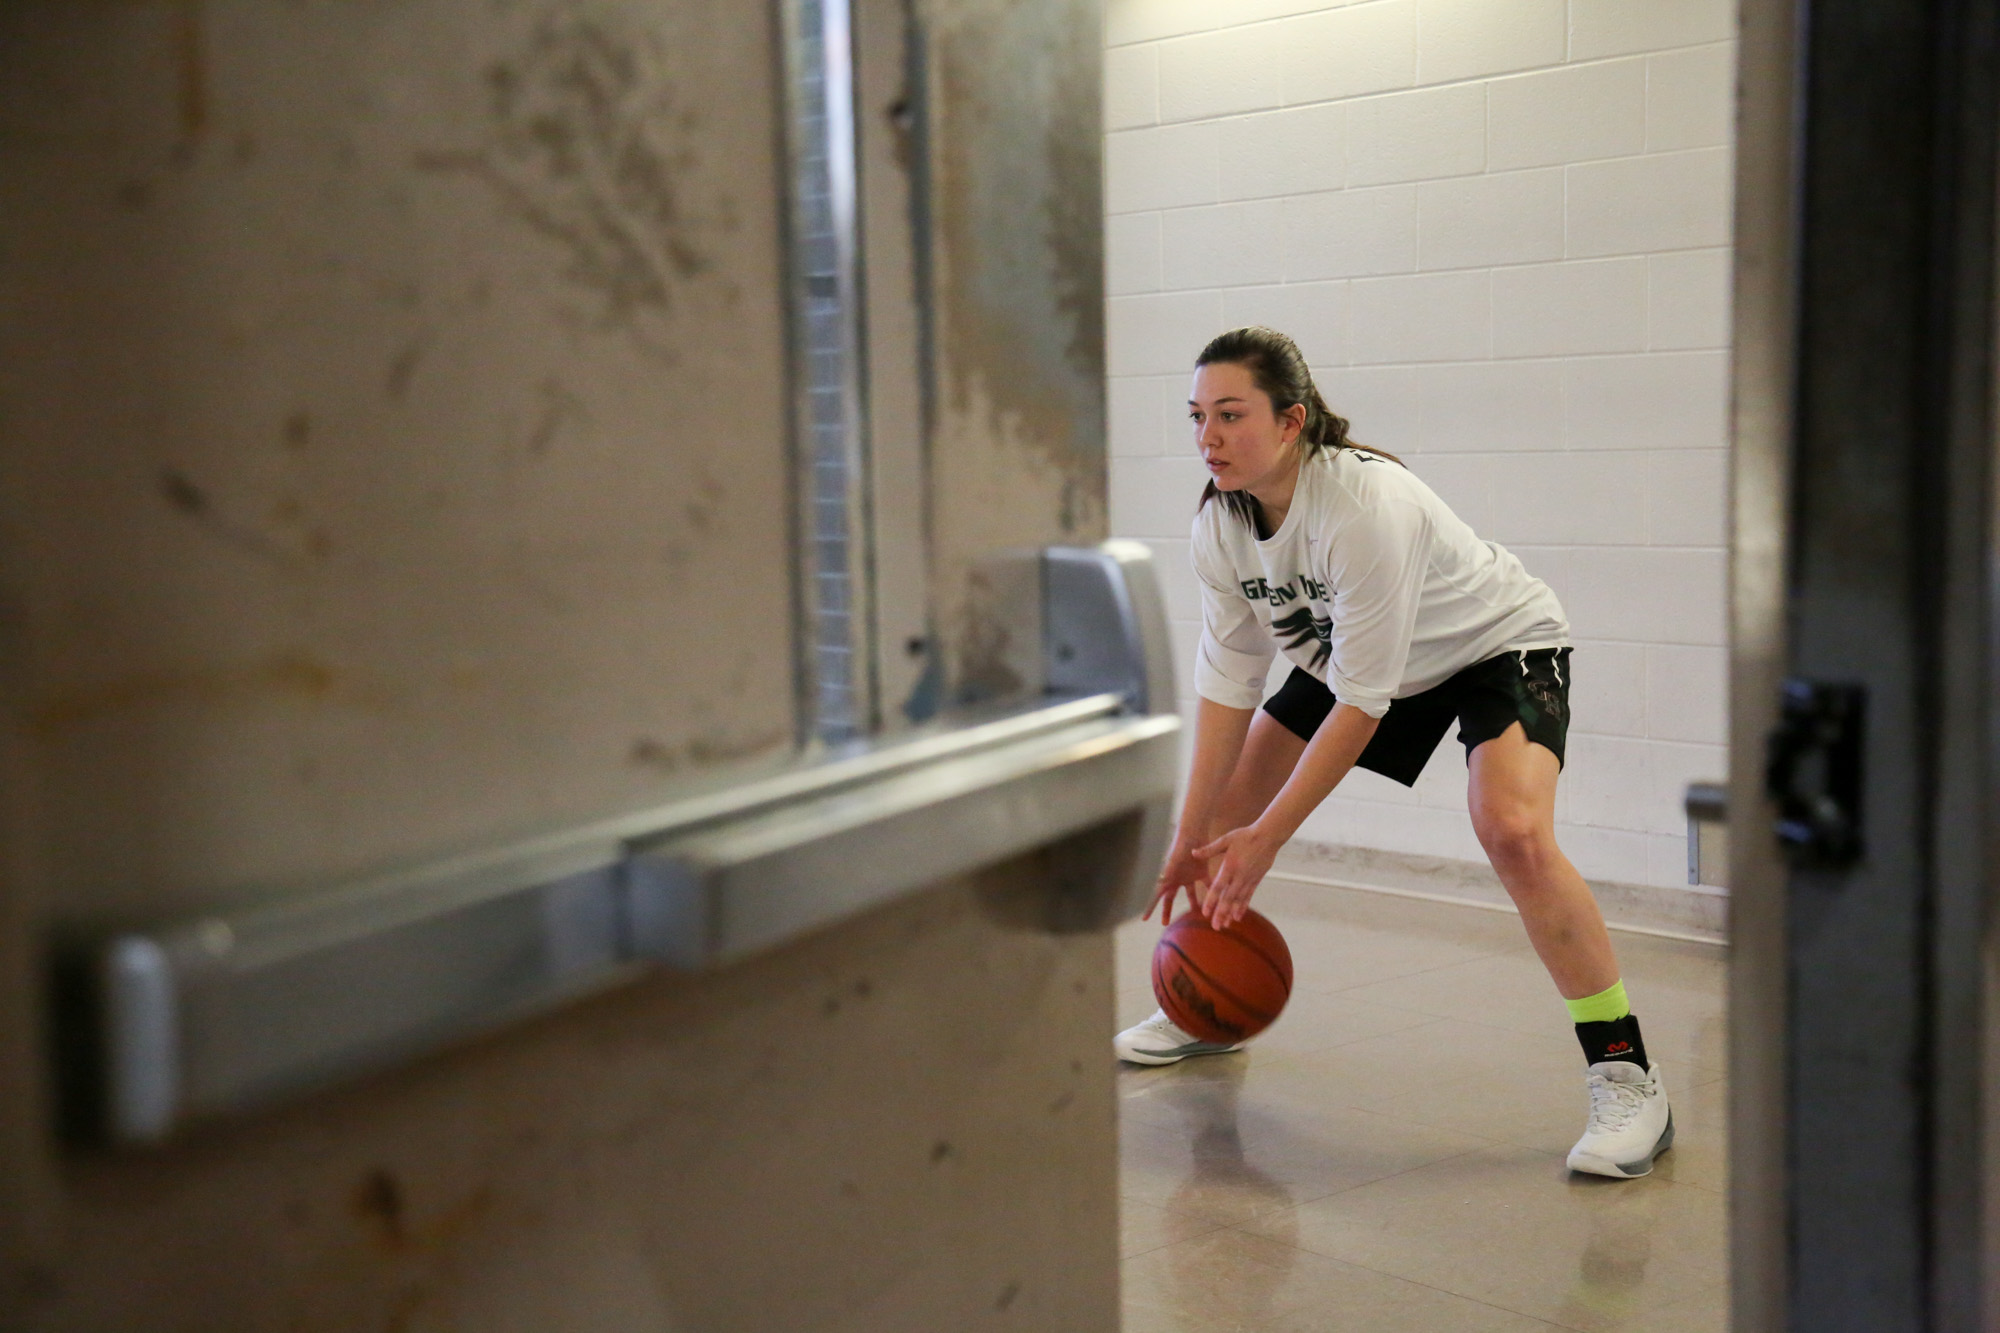 Kelly Fitzgerald practices a lot outside the gym before going for the real game on Feb.10, 2017.